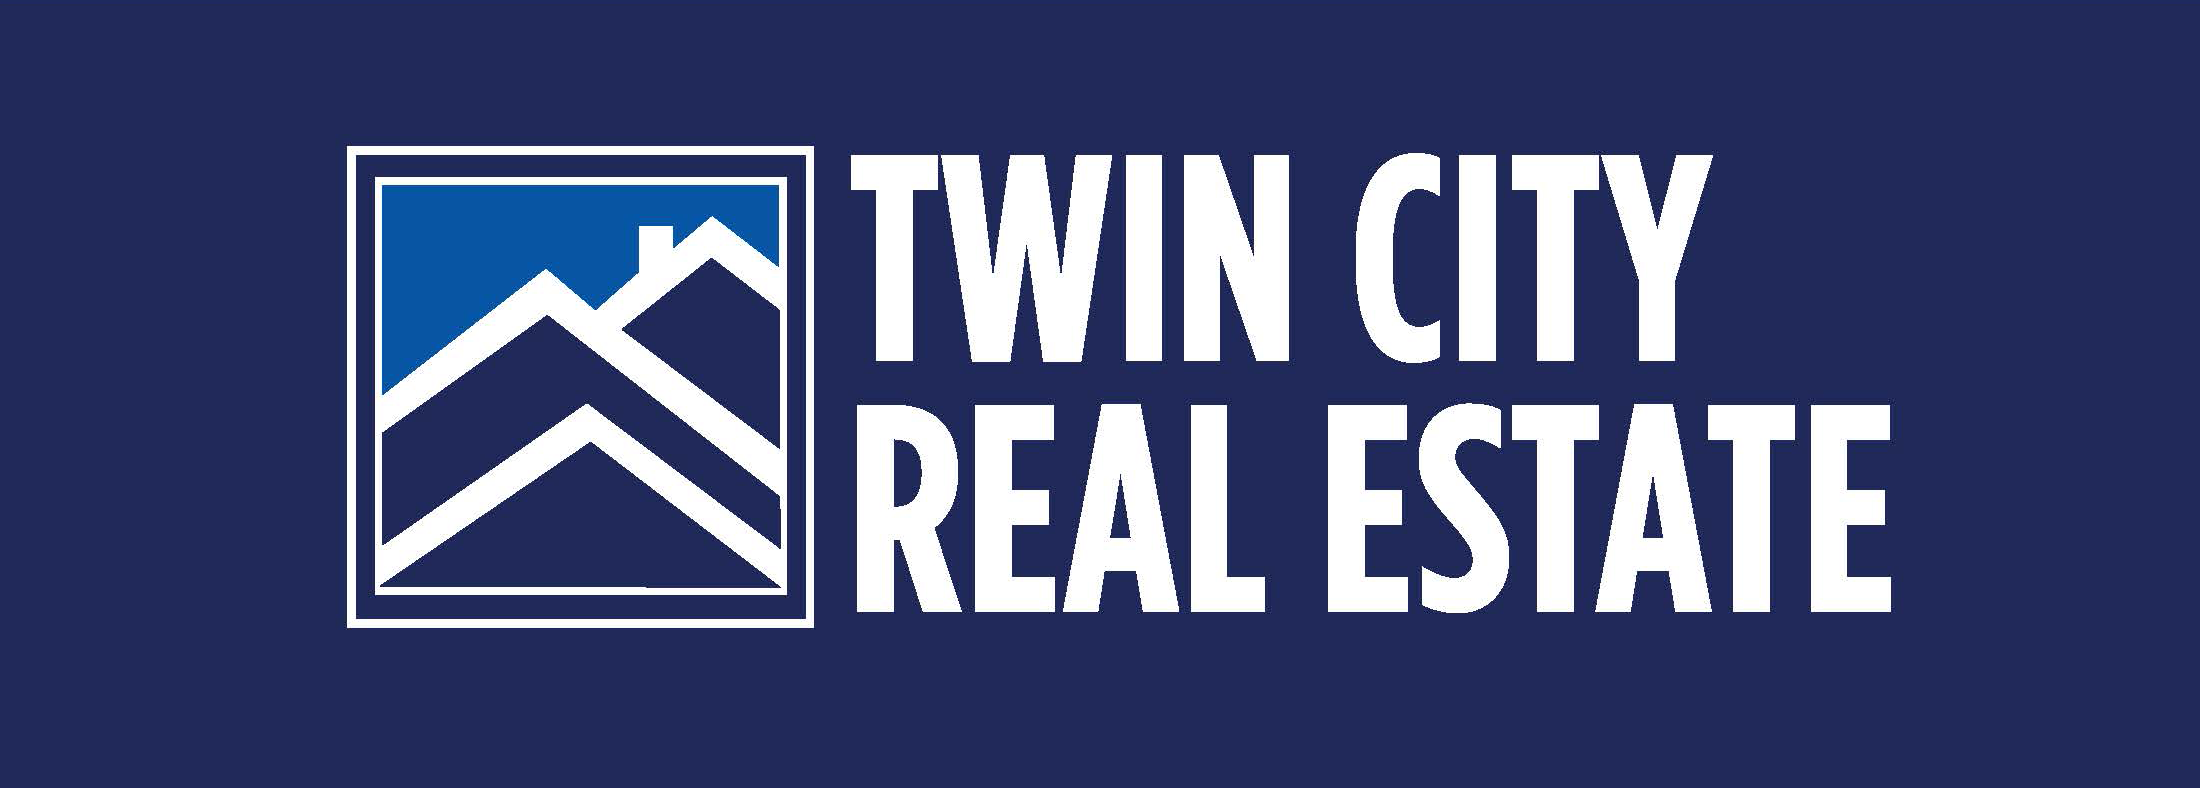 Twin Cities Real Estate Services